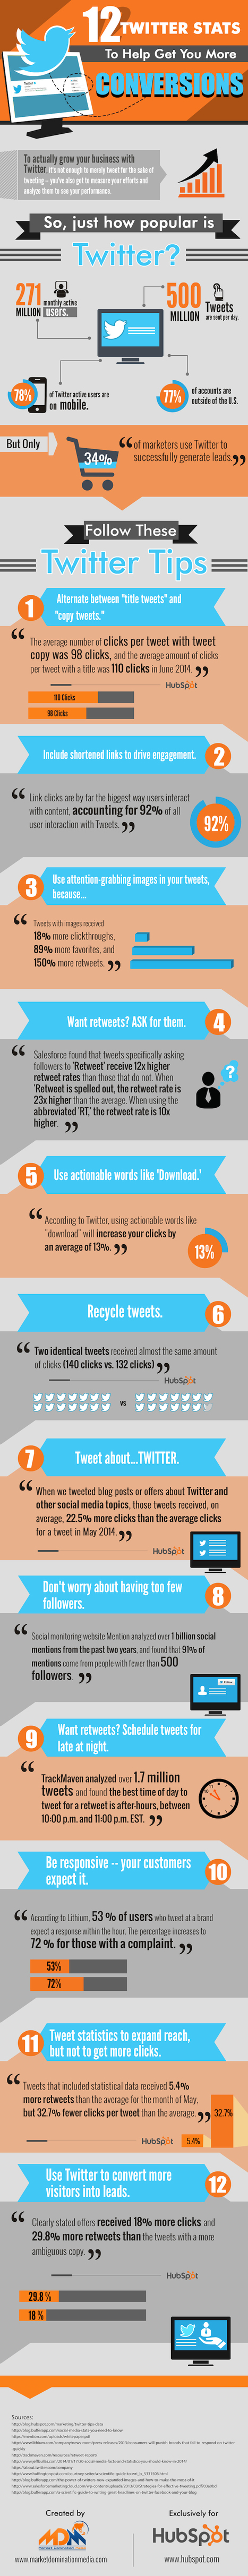 12 Tips for Increasing Click-Through-Rates on Twitter | Public Relations & Social Media Insight | Scoop.it